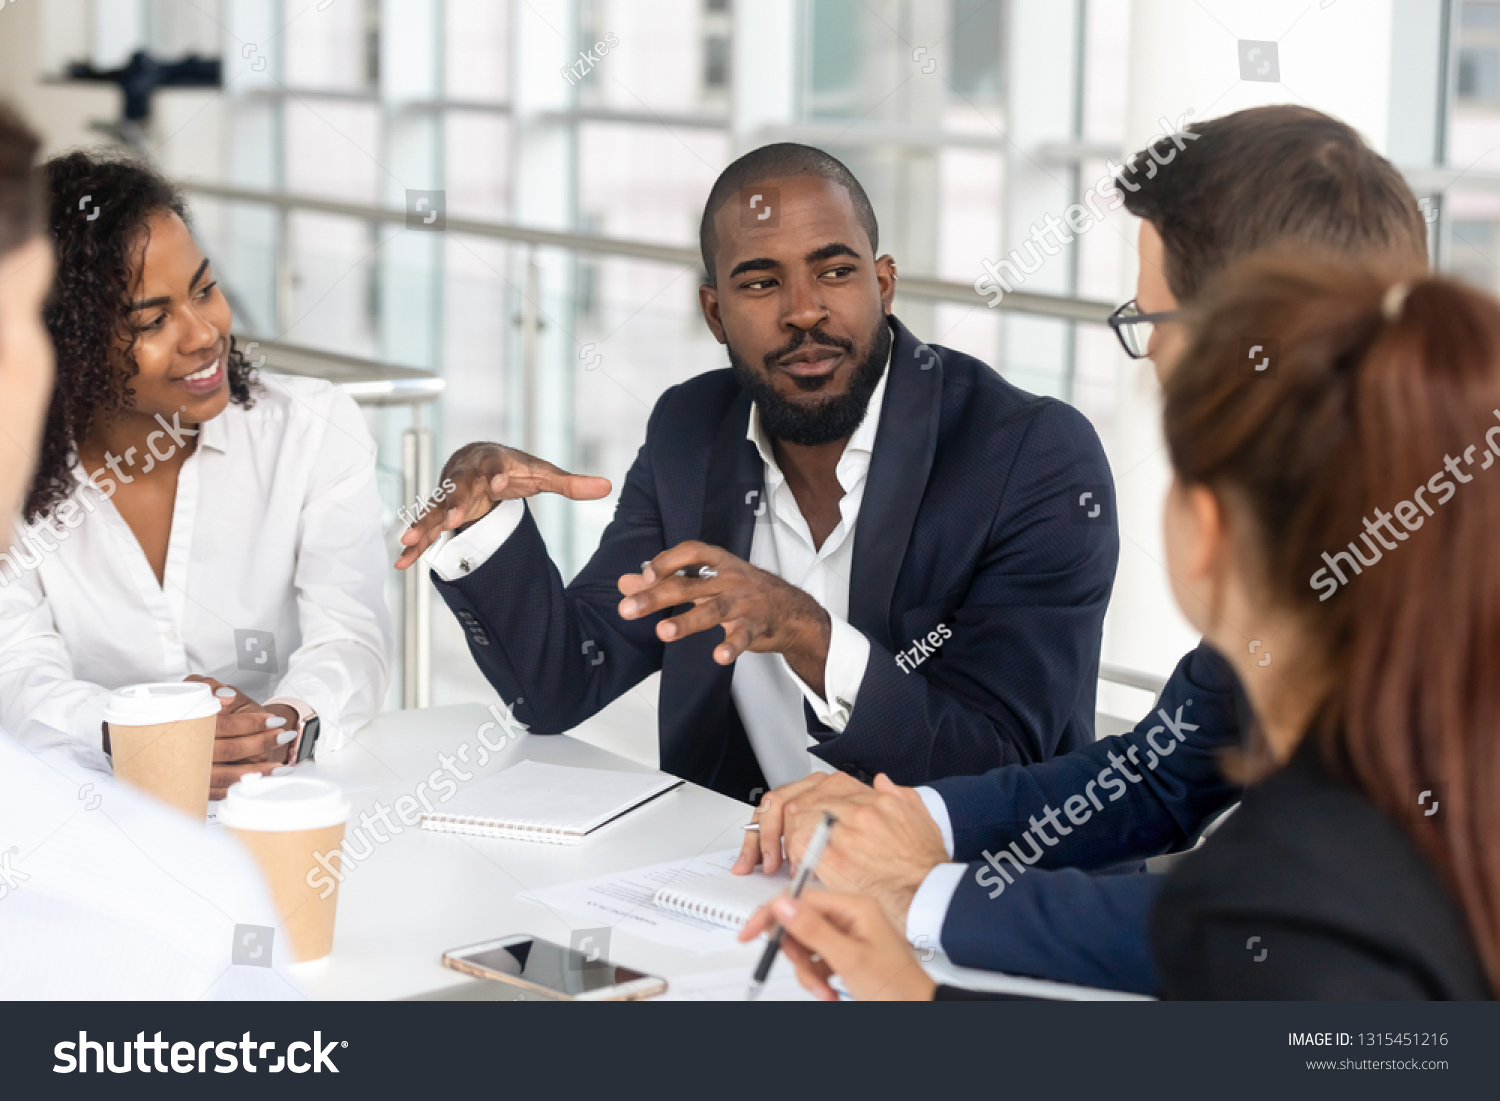 Millennial employees gathered in boardroom for training, black boss ceo leader leading corporate team during seminar learning at modern office. Internship and leadership coaching and education concept #1315451216